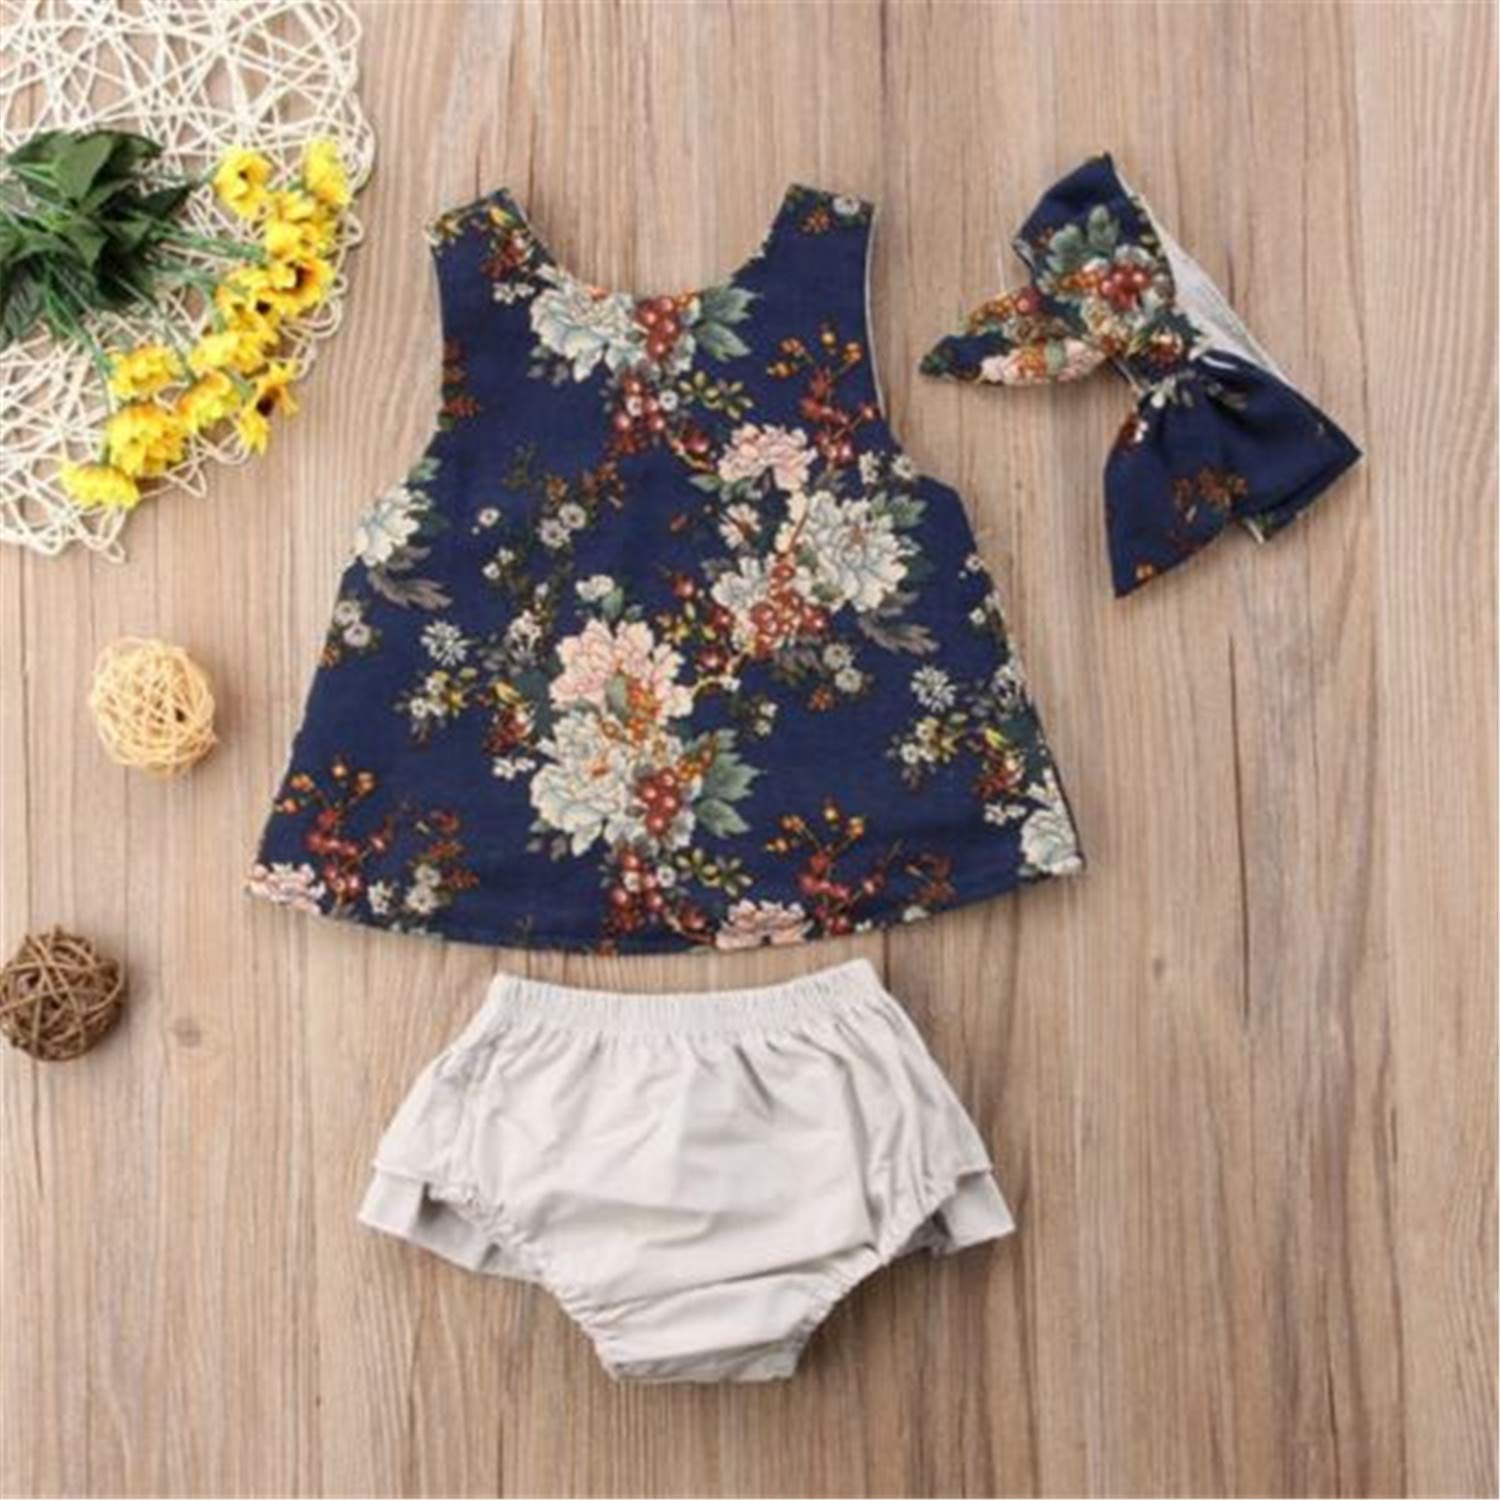 Fashion New Toddler Kids Baby Girls Outfit Clothes Sets Vest T-Shirt Sleeveless Tops Shorts Floral Irregular Clothing 0-3T